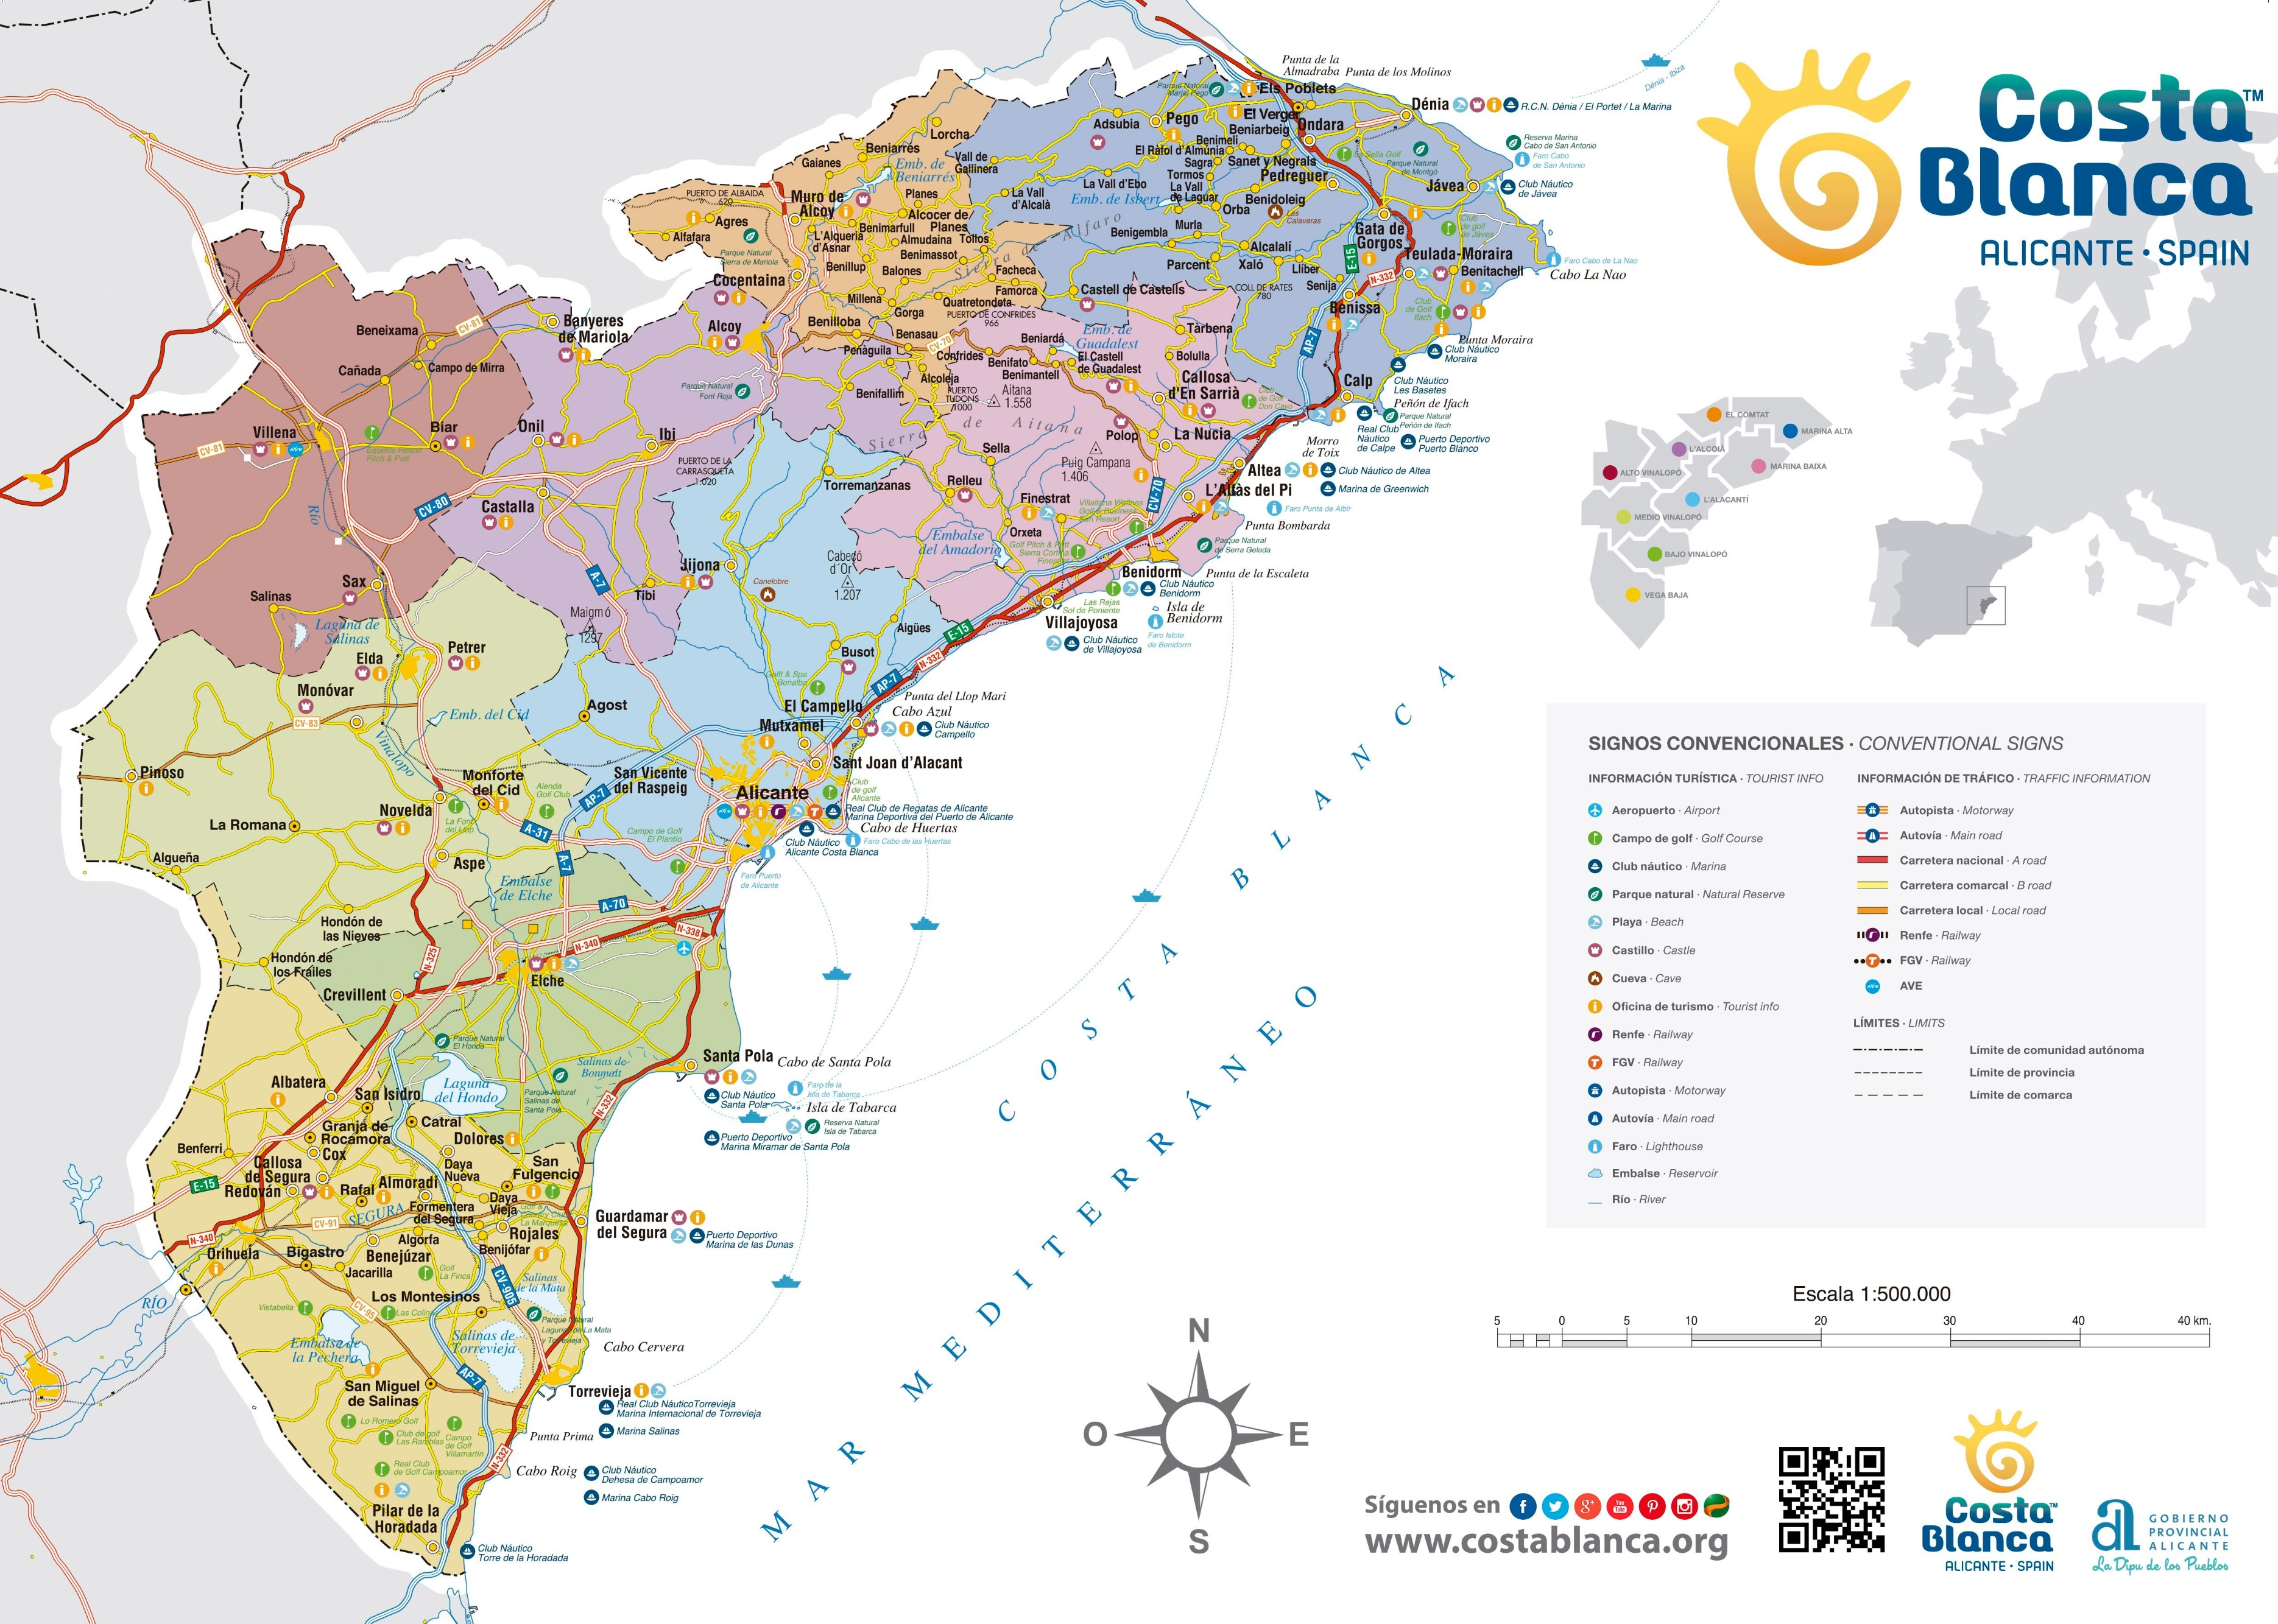 Costa Blanca Costa Blanca Tourist Map